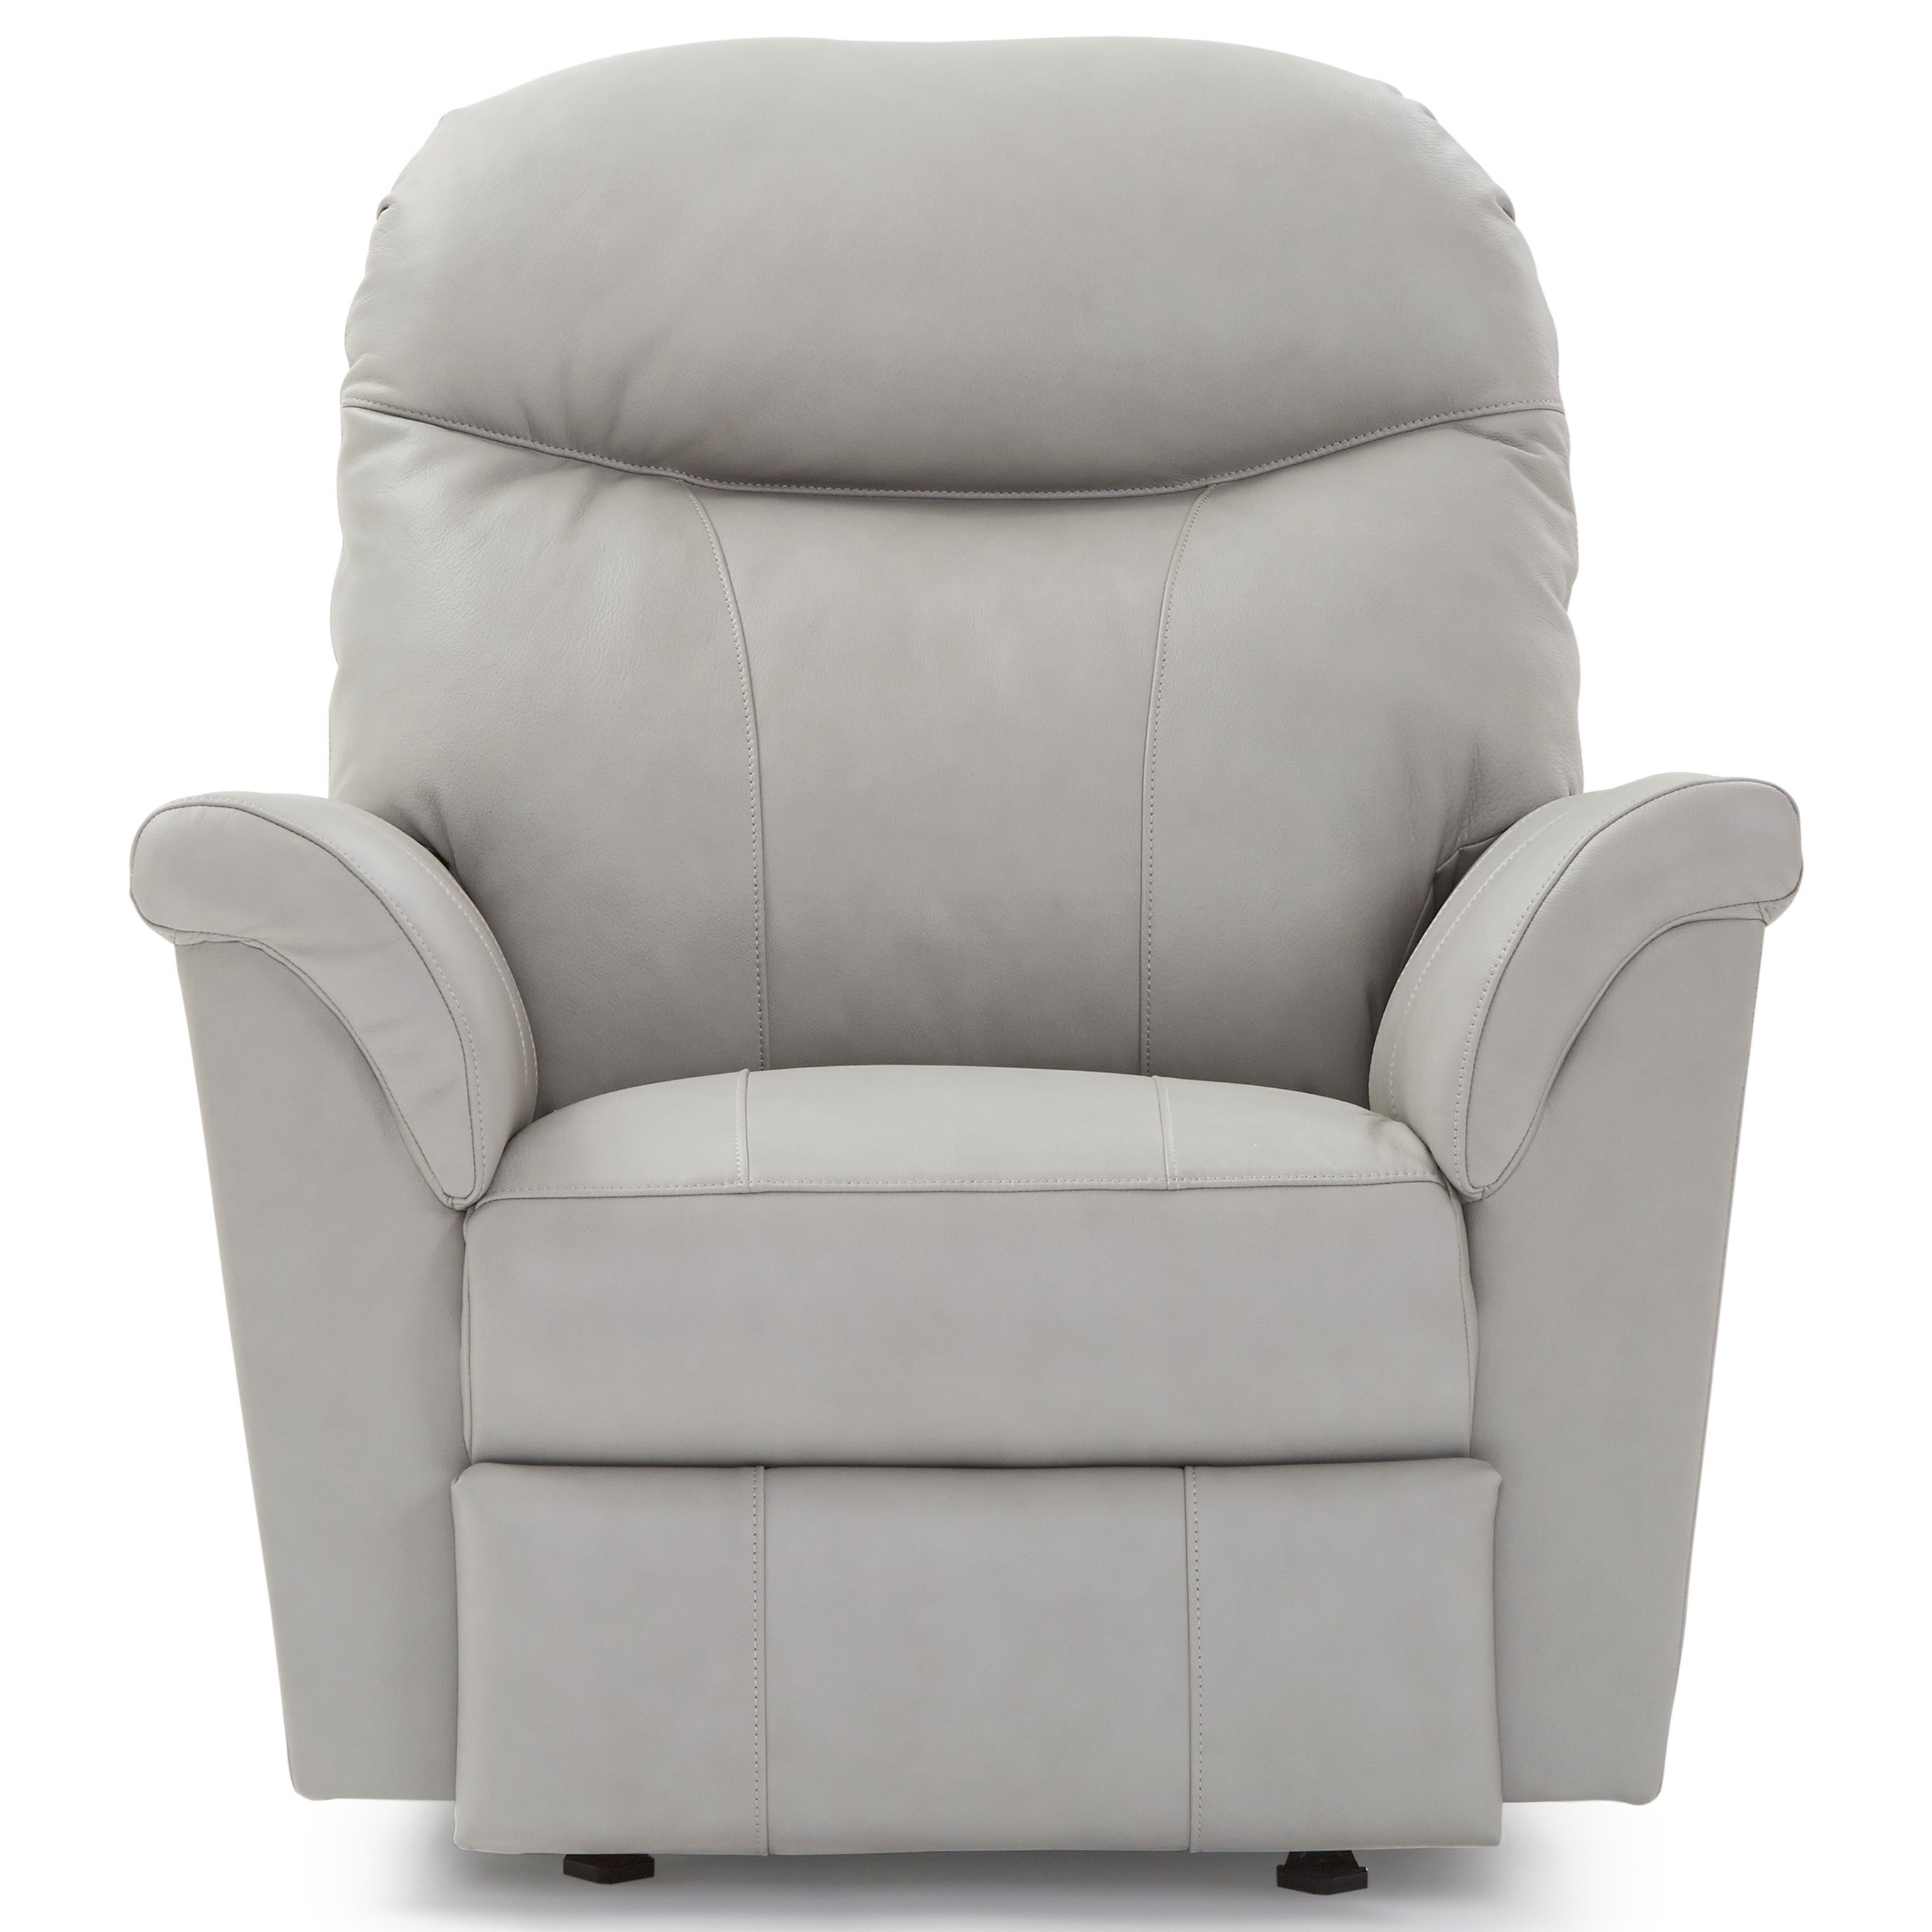 Caitlin Power Swivel Glider Recliner by Best Home Furnishings at Baer's Furniture